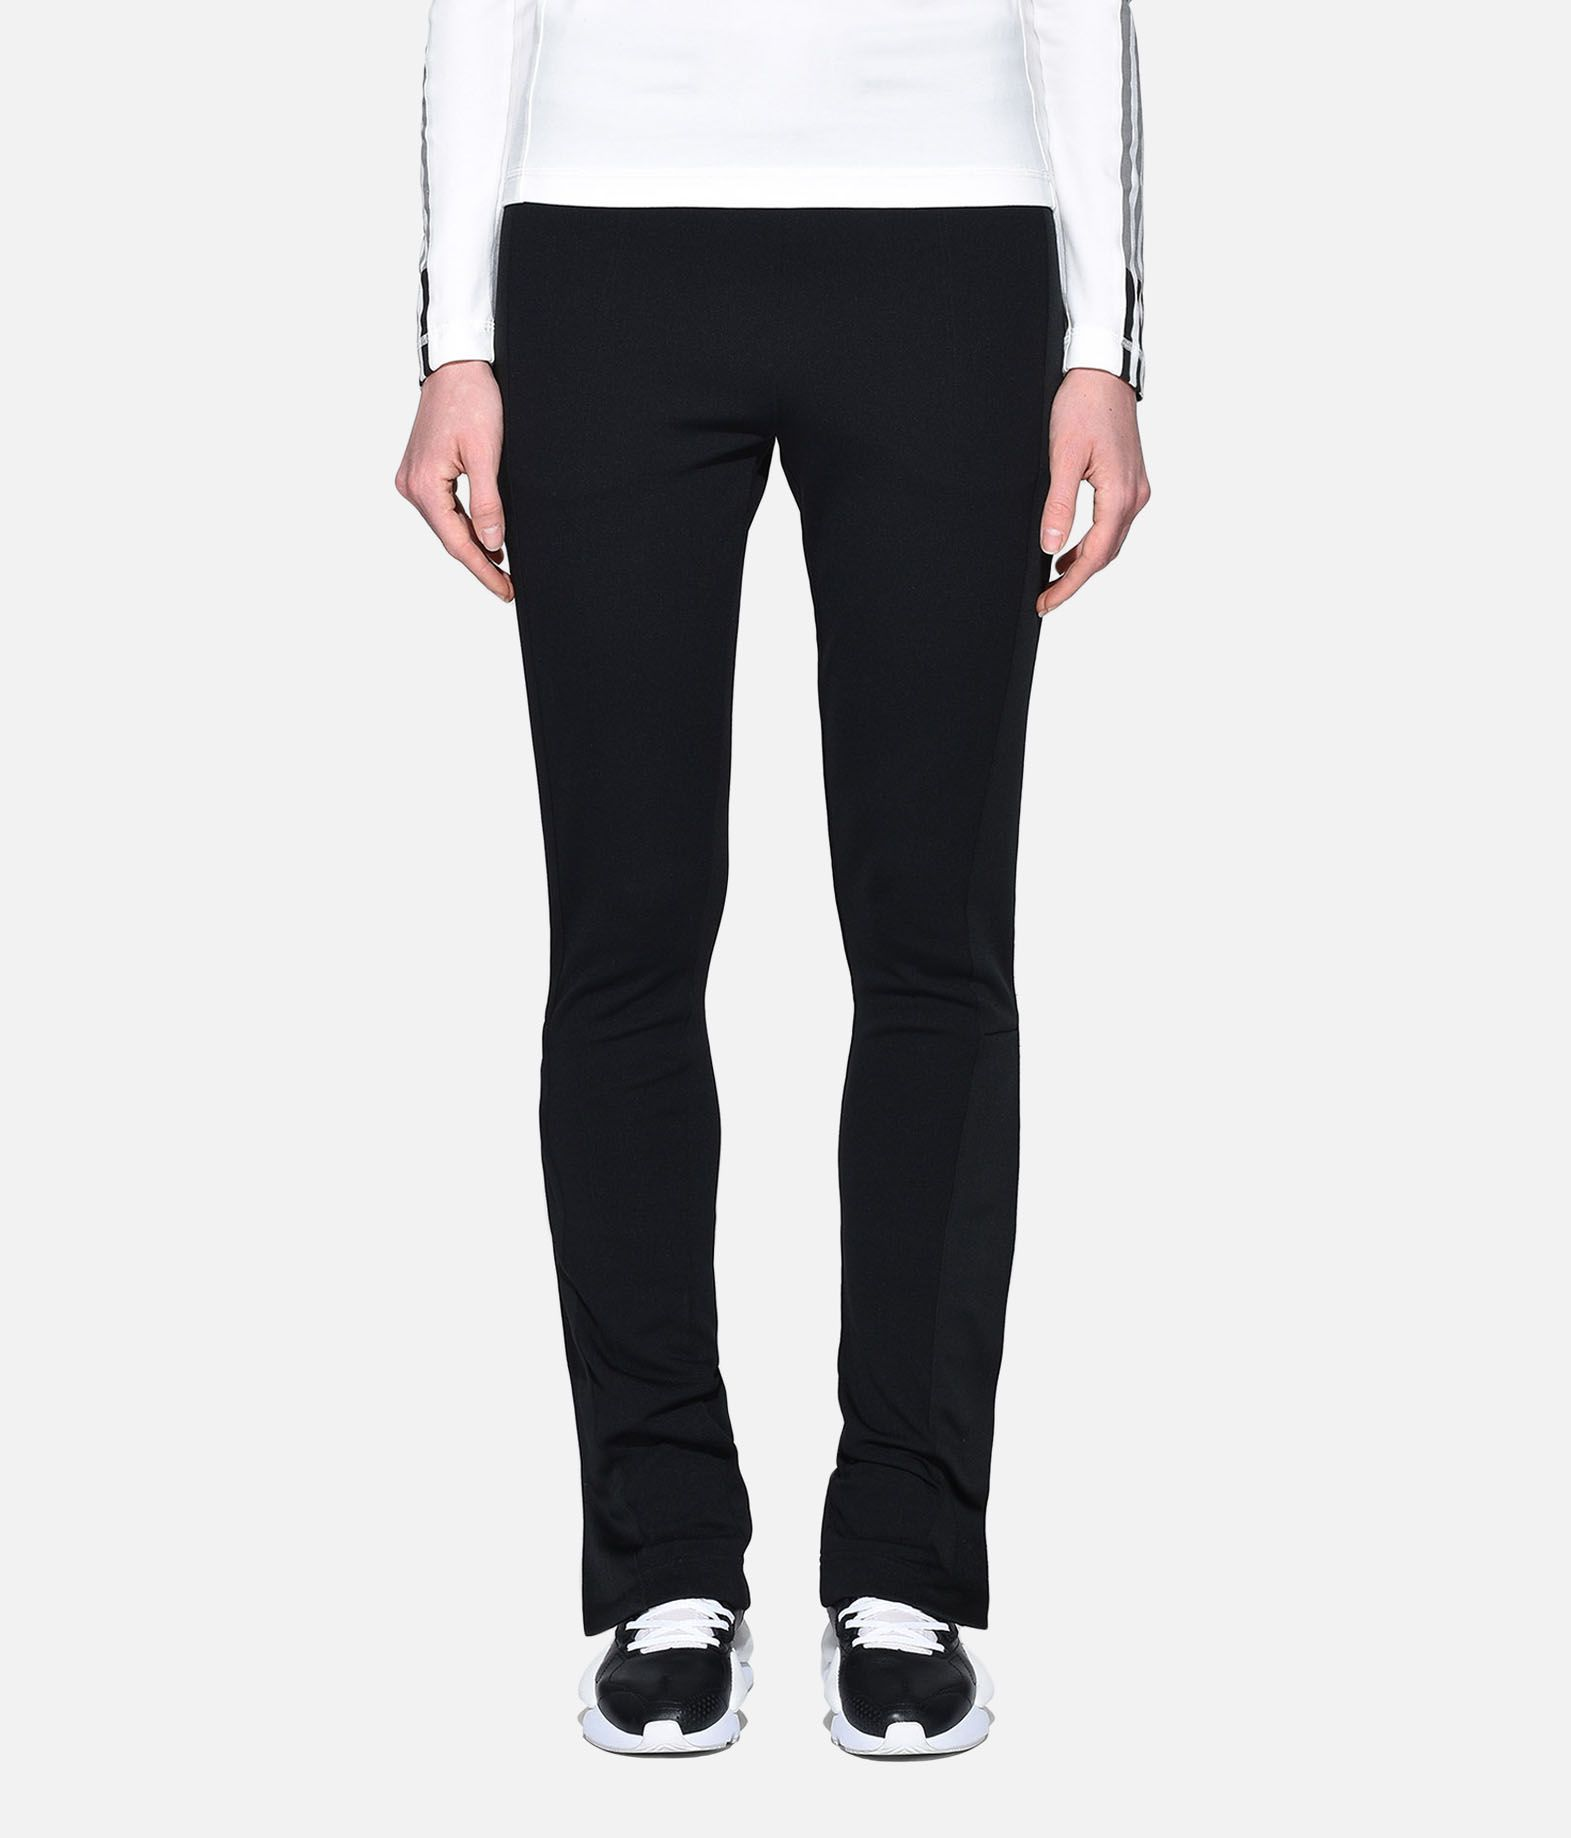 Y-3 Y-3 3-Stripes Firebird Track Pants Track pant Woman r